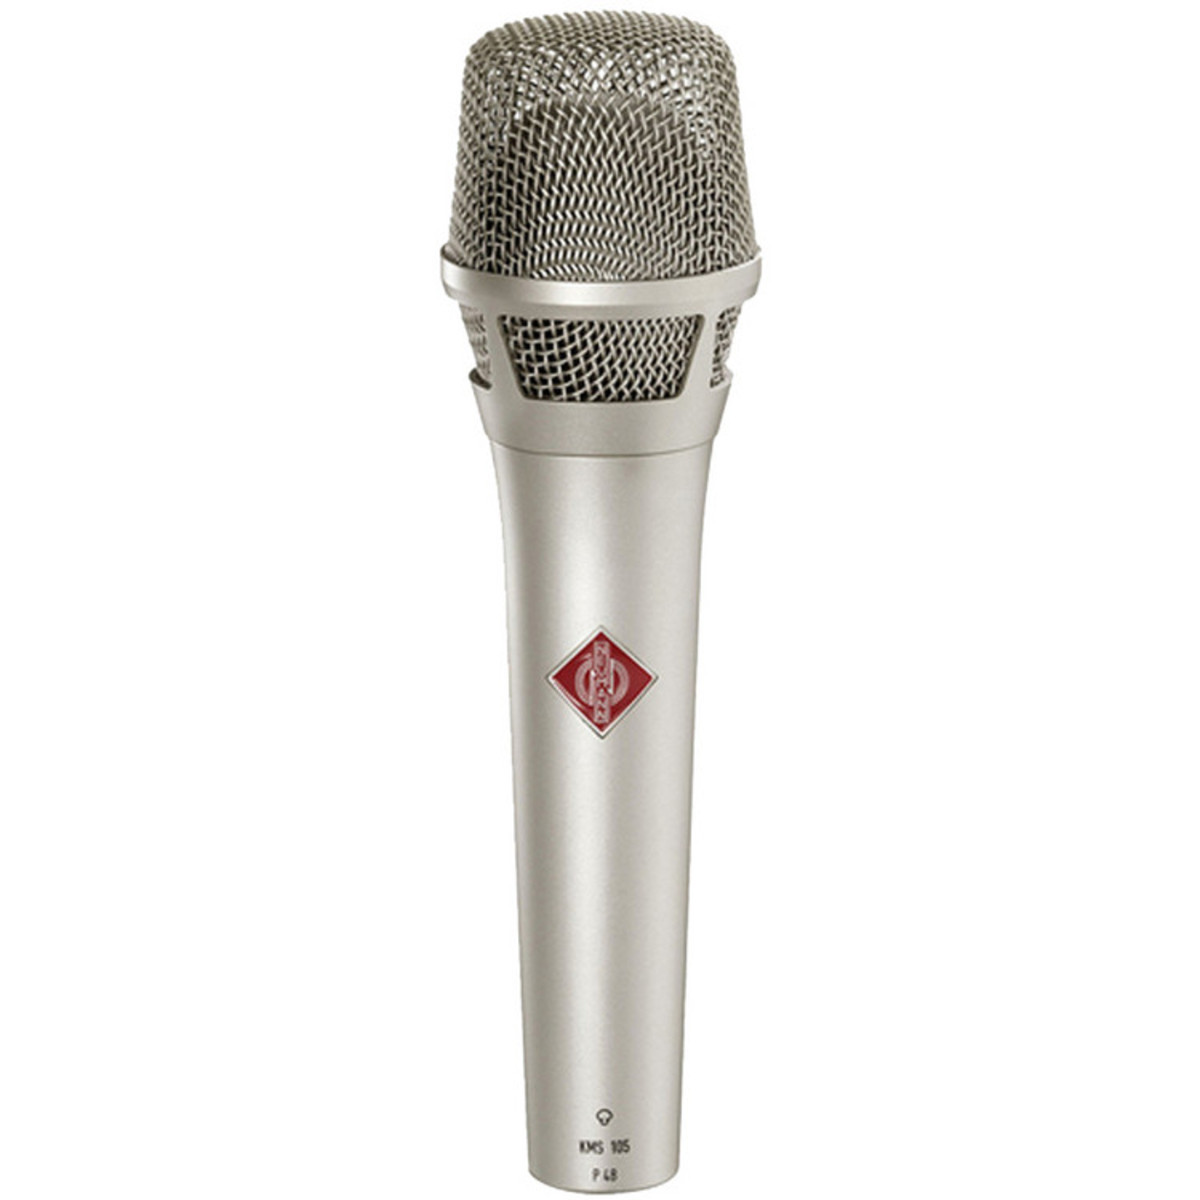 neumann kms 105 super cardioid condenser vocal mic nickel b stock at. Black Bedroom Furniture Sets. Home Design Ideas